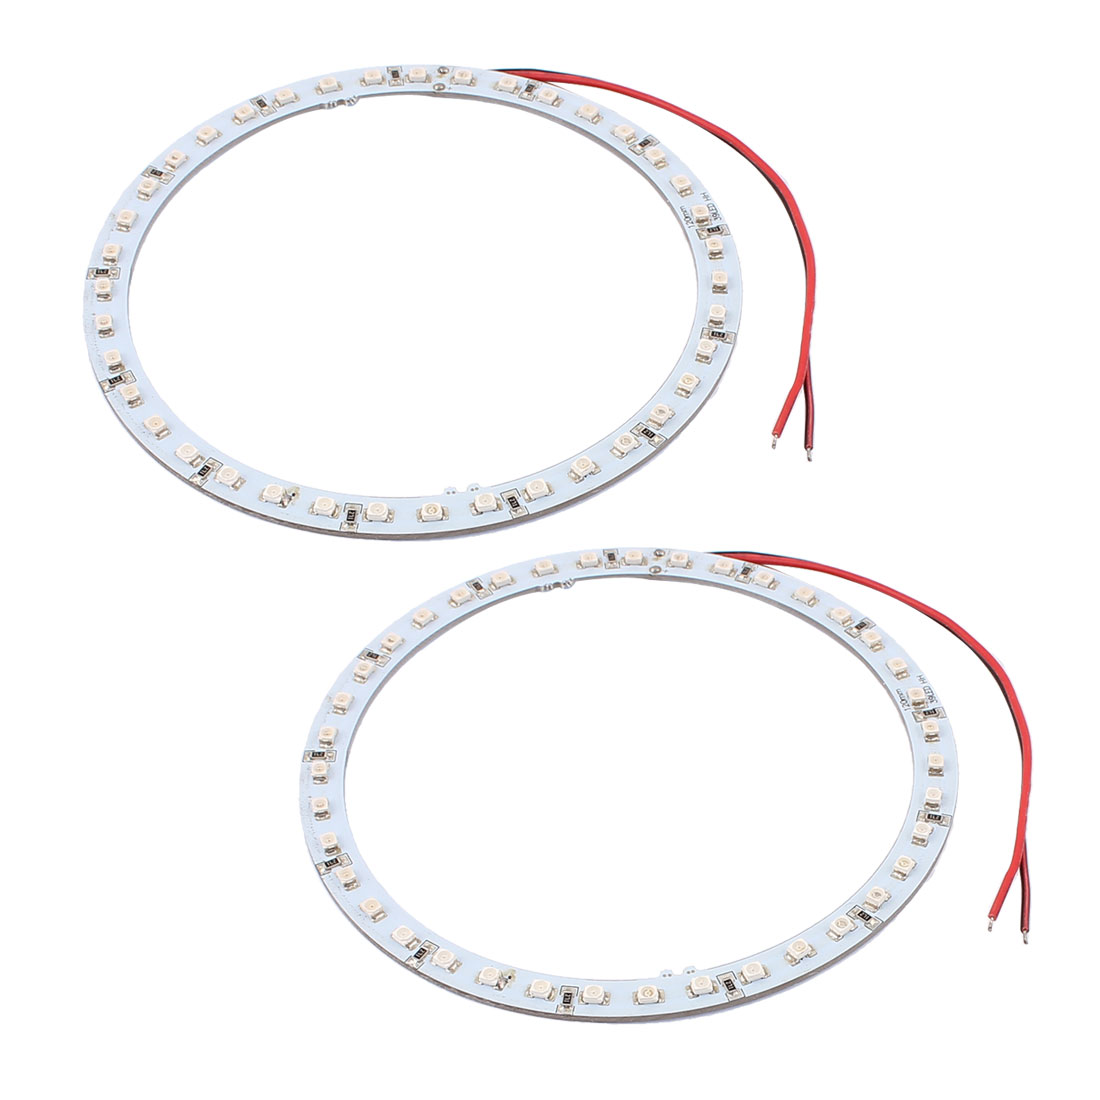 2 Pcs 120mm Dia Red 39 SMD LED Car Rear Angel Eyes Ring Light